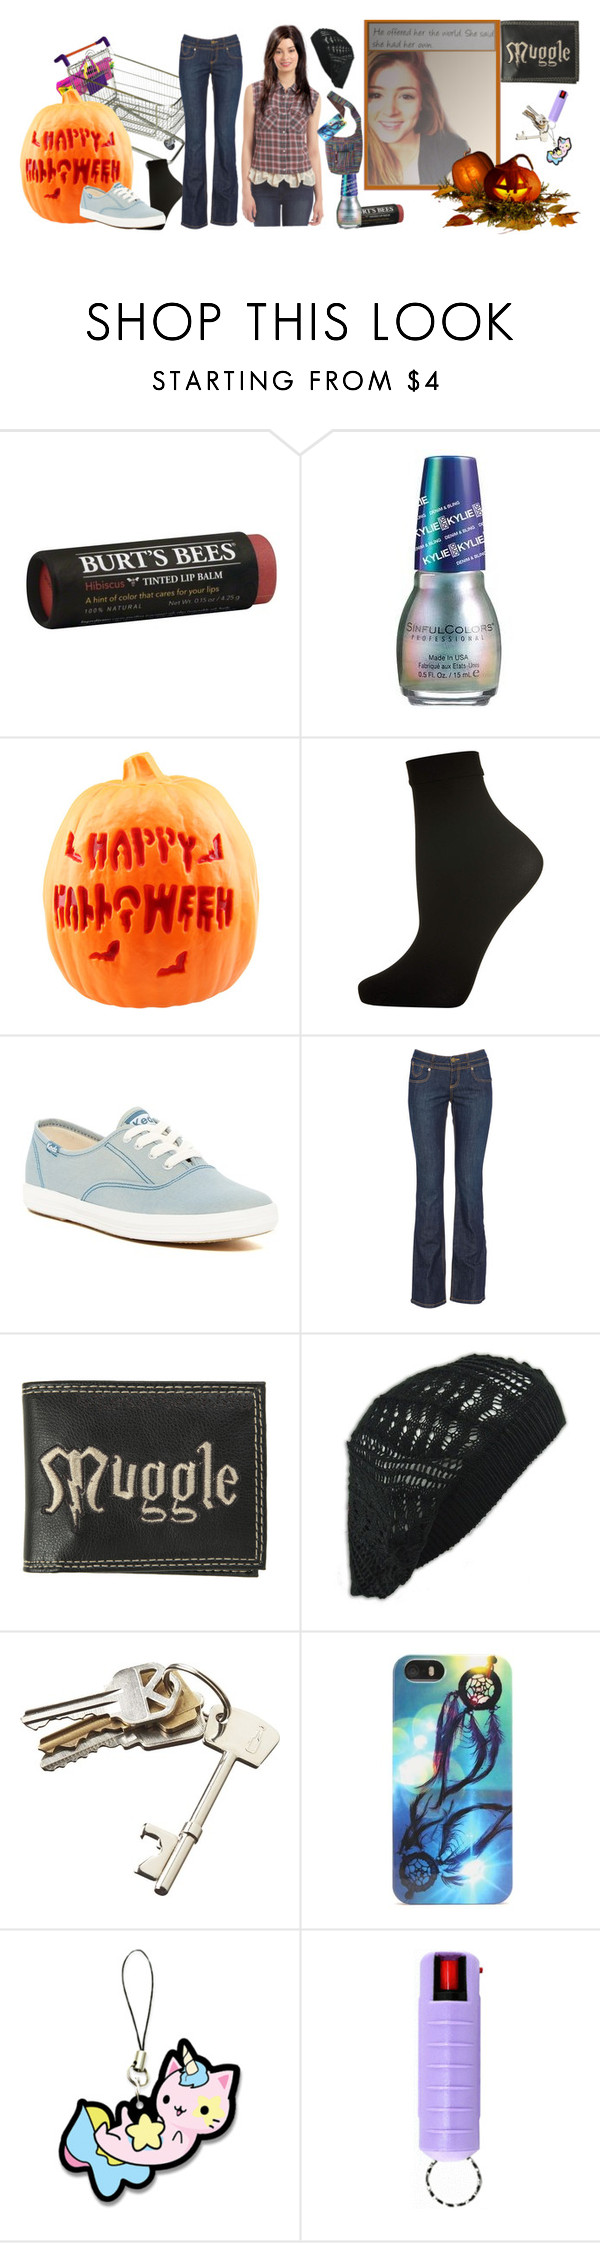 """""""Sabrina 59"""" by stockmon ❤ liked on Polyvore featuring Burt's Bees, Topshop, Keds, Naf Naf, CB2 and With Love From CA"""